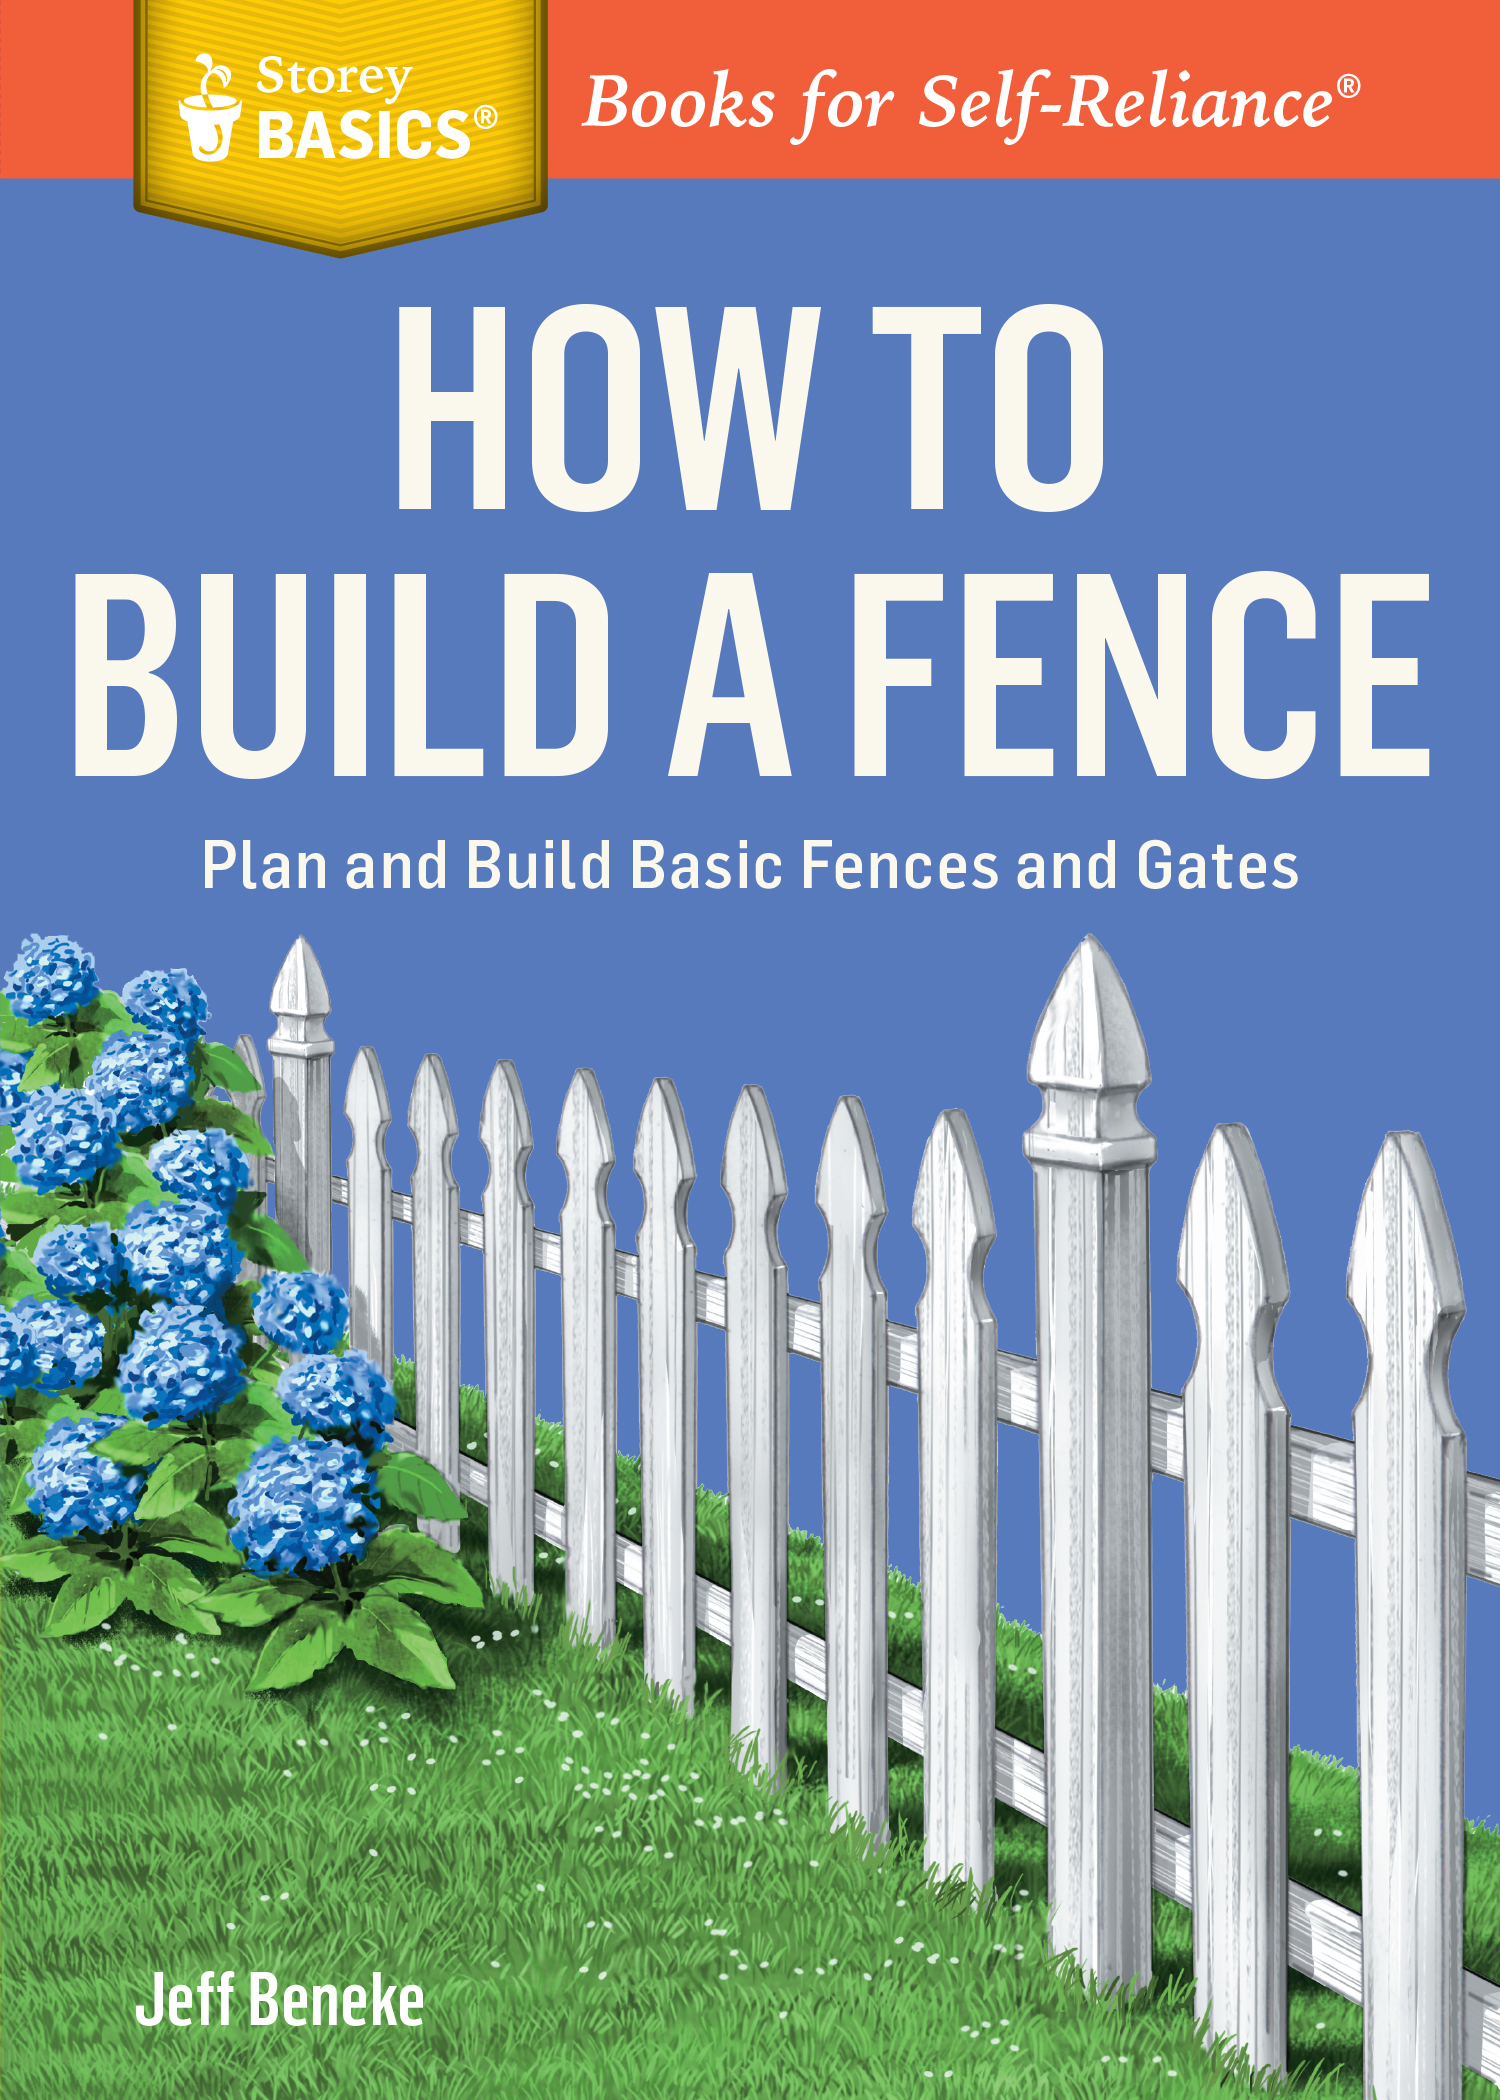 How to Build a Fence Plan and Build Basic Fences and Gates. A Storey BASICS® Title - Jeff Beneke